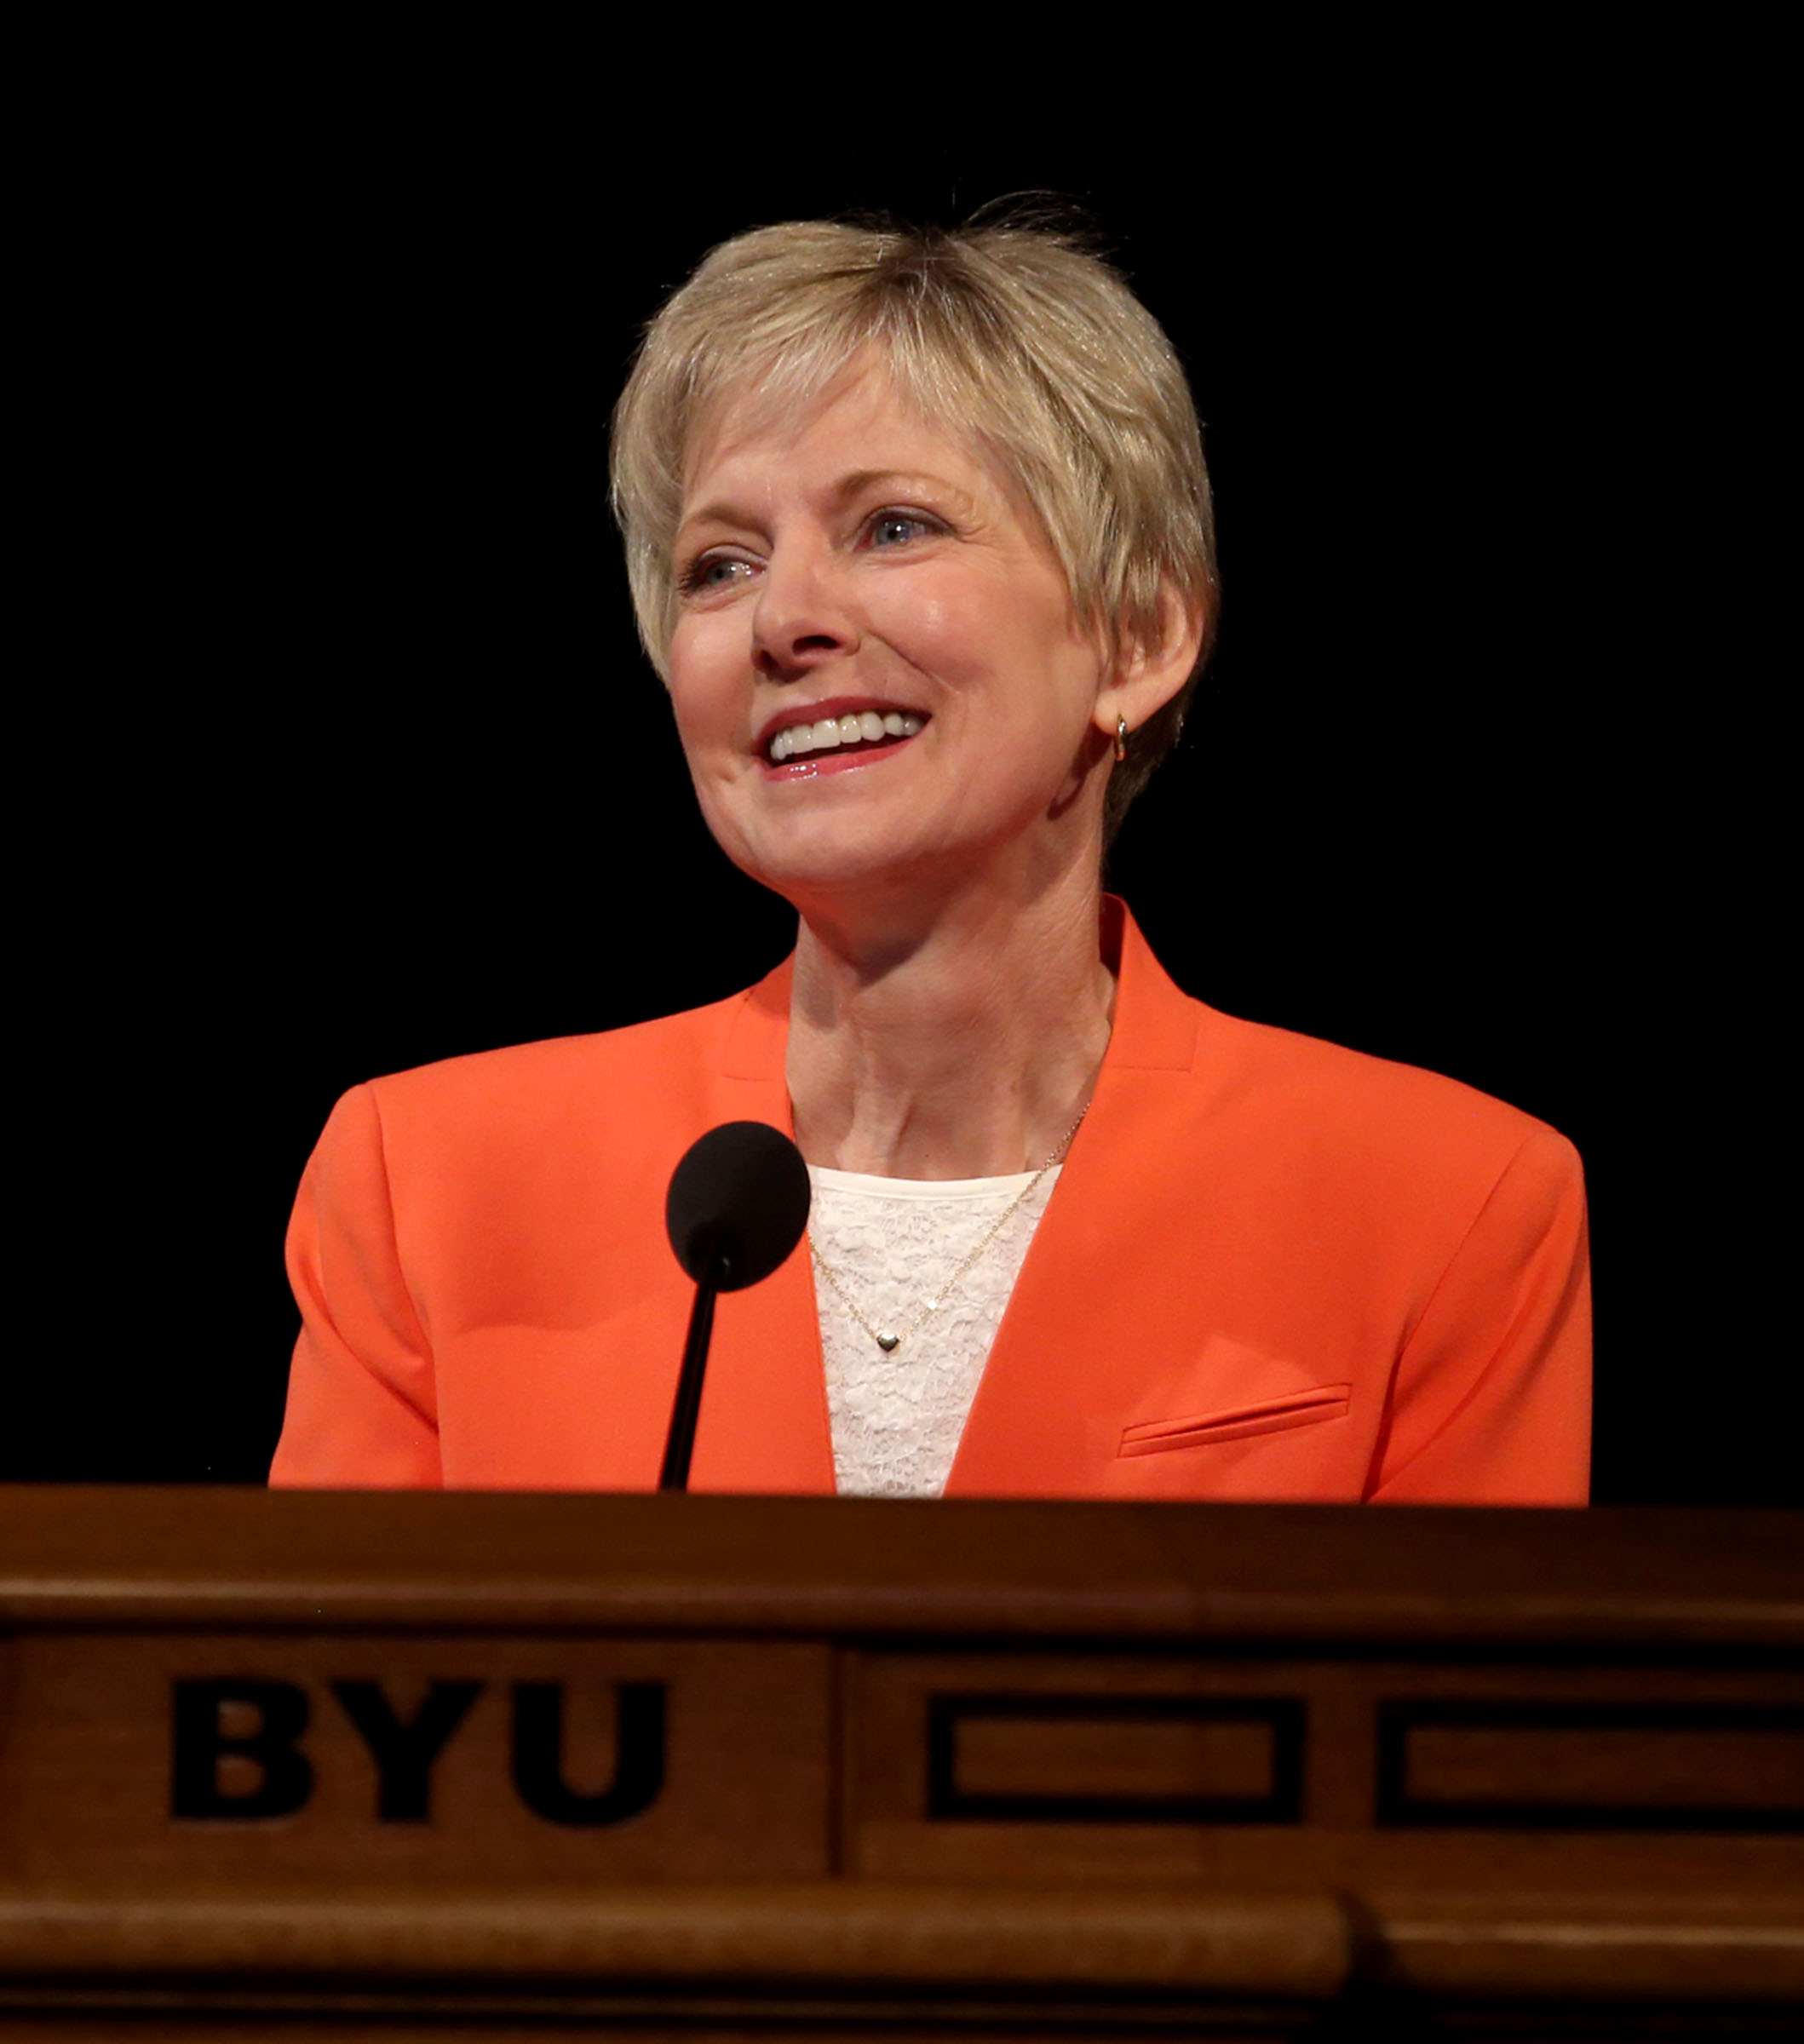 Jean B. Bingham, Relief Society General President, speaks at the BYU Women's Conference in the Marriott Center at BYU in Provo on Friday, May 5, 2017.